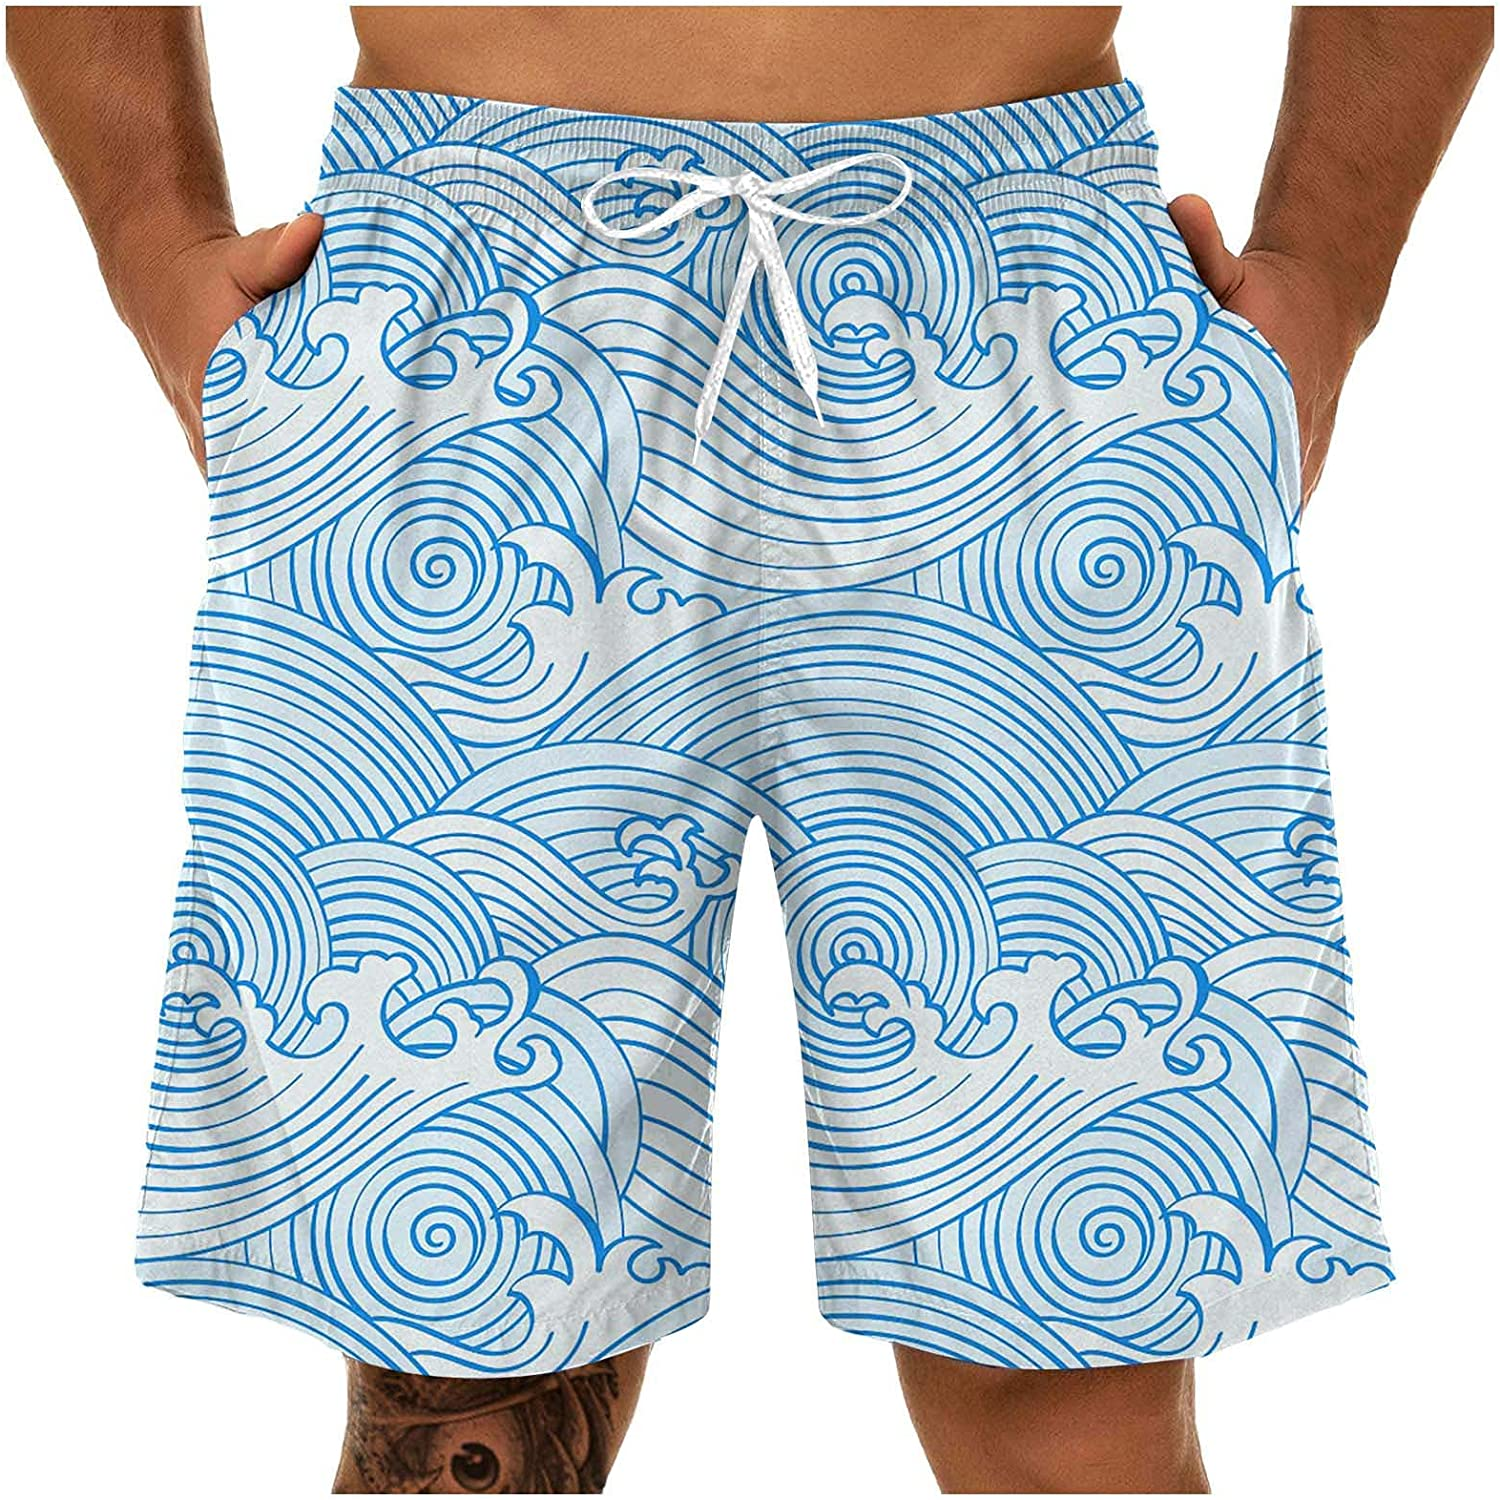 Burband Mens Shorts Casual Summer Beach Shorts 3D Print Swim Trunks Athletic Gym Lounge Pants with Elastic Waist and Pockets